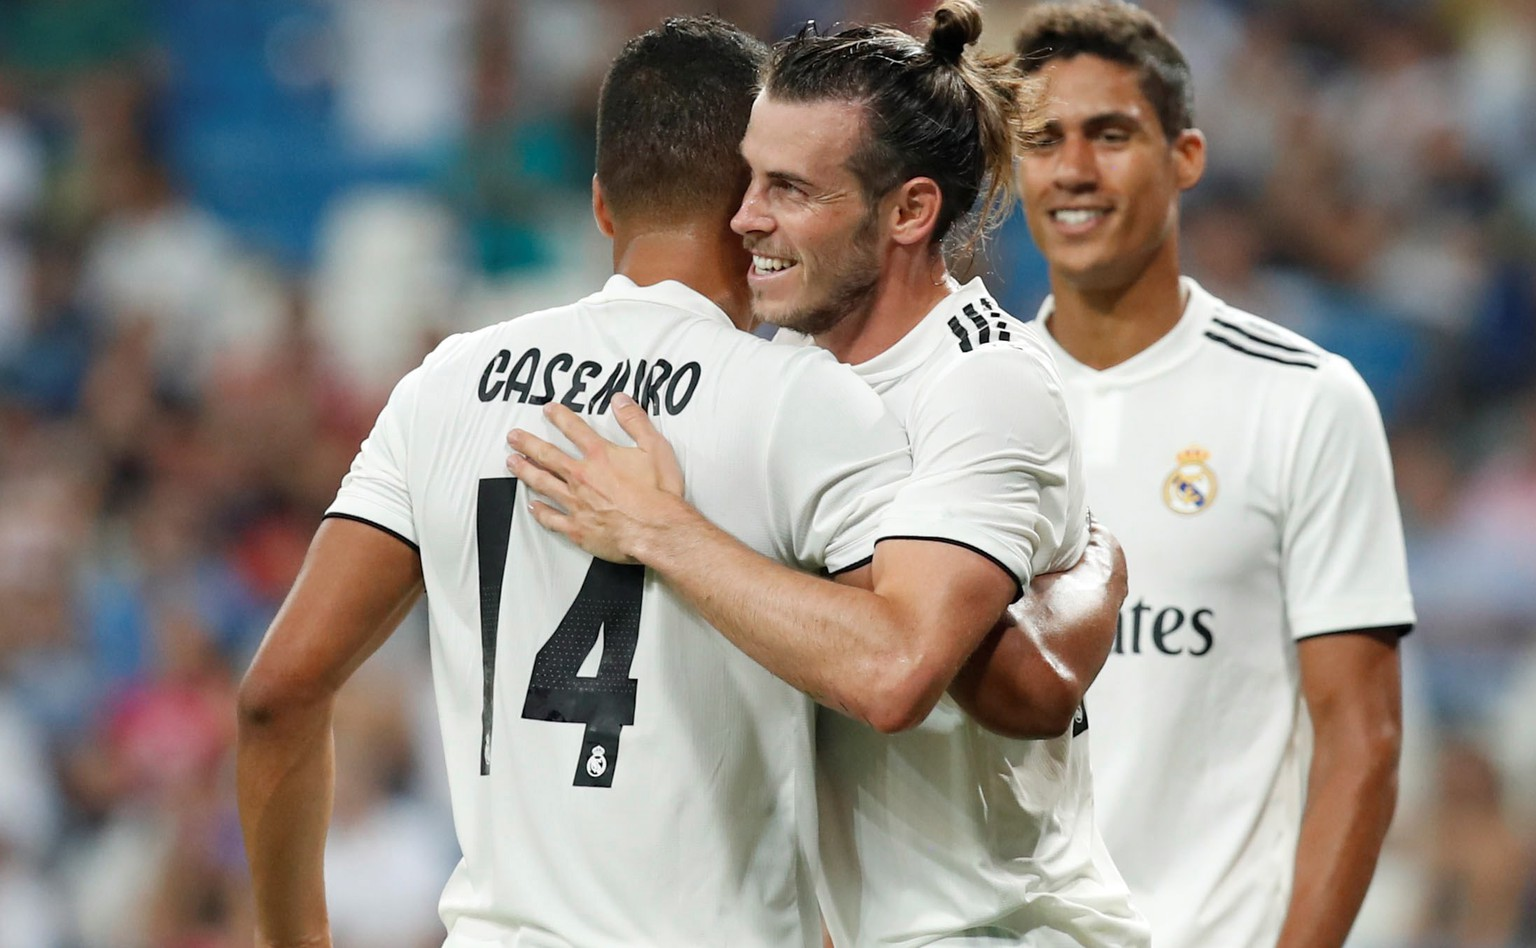 epa06944630 Real Madrid´s Welsh forward Gareth Bale (C) celebrates with Brazilian Casemiro (L) after scoring against Milan during the Santiago Bernabeu trophy match against Milan played at the Santiago Bernabeu stadium in Madrid, Spain, 11 August 2018.  EPA/FERNANDO ALVARADO